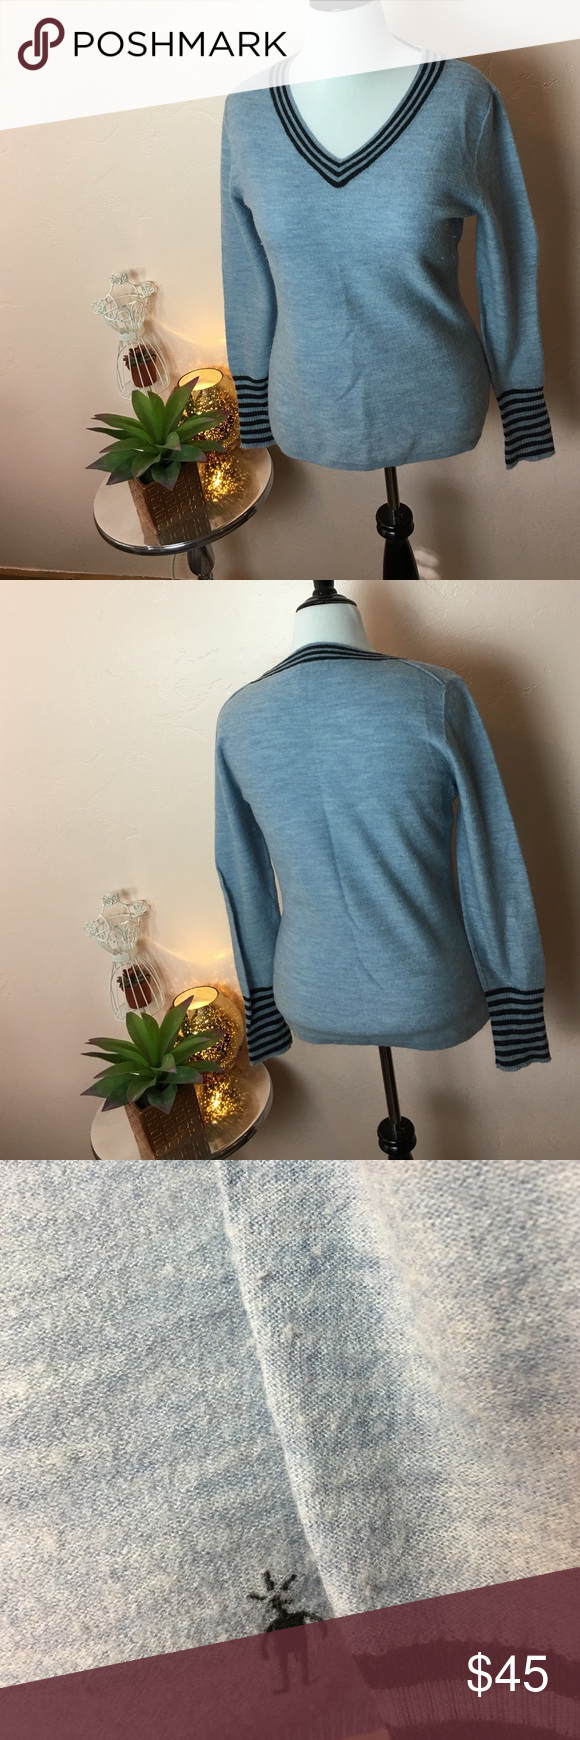 Smartwool Light Blue Vneck Sweater Smartwool Light Blue with Dark Blue accent Vneck Sweater - Gently used but in great condition. - Size: Large - I ❤️ LOVE OFFERS! Smartwool Sweaters V-Necks